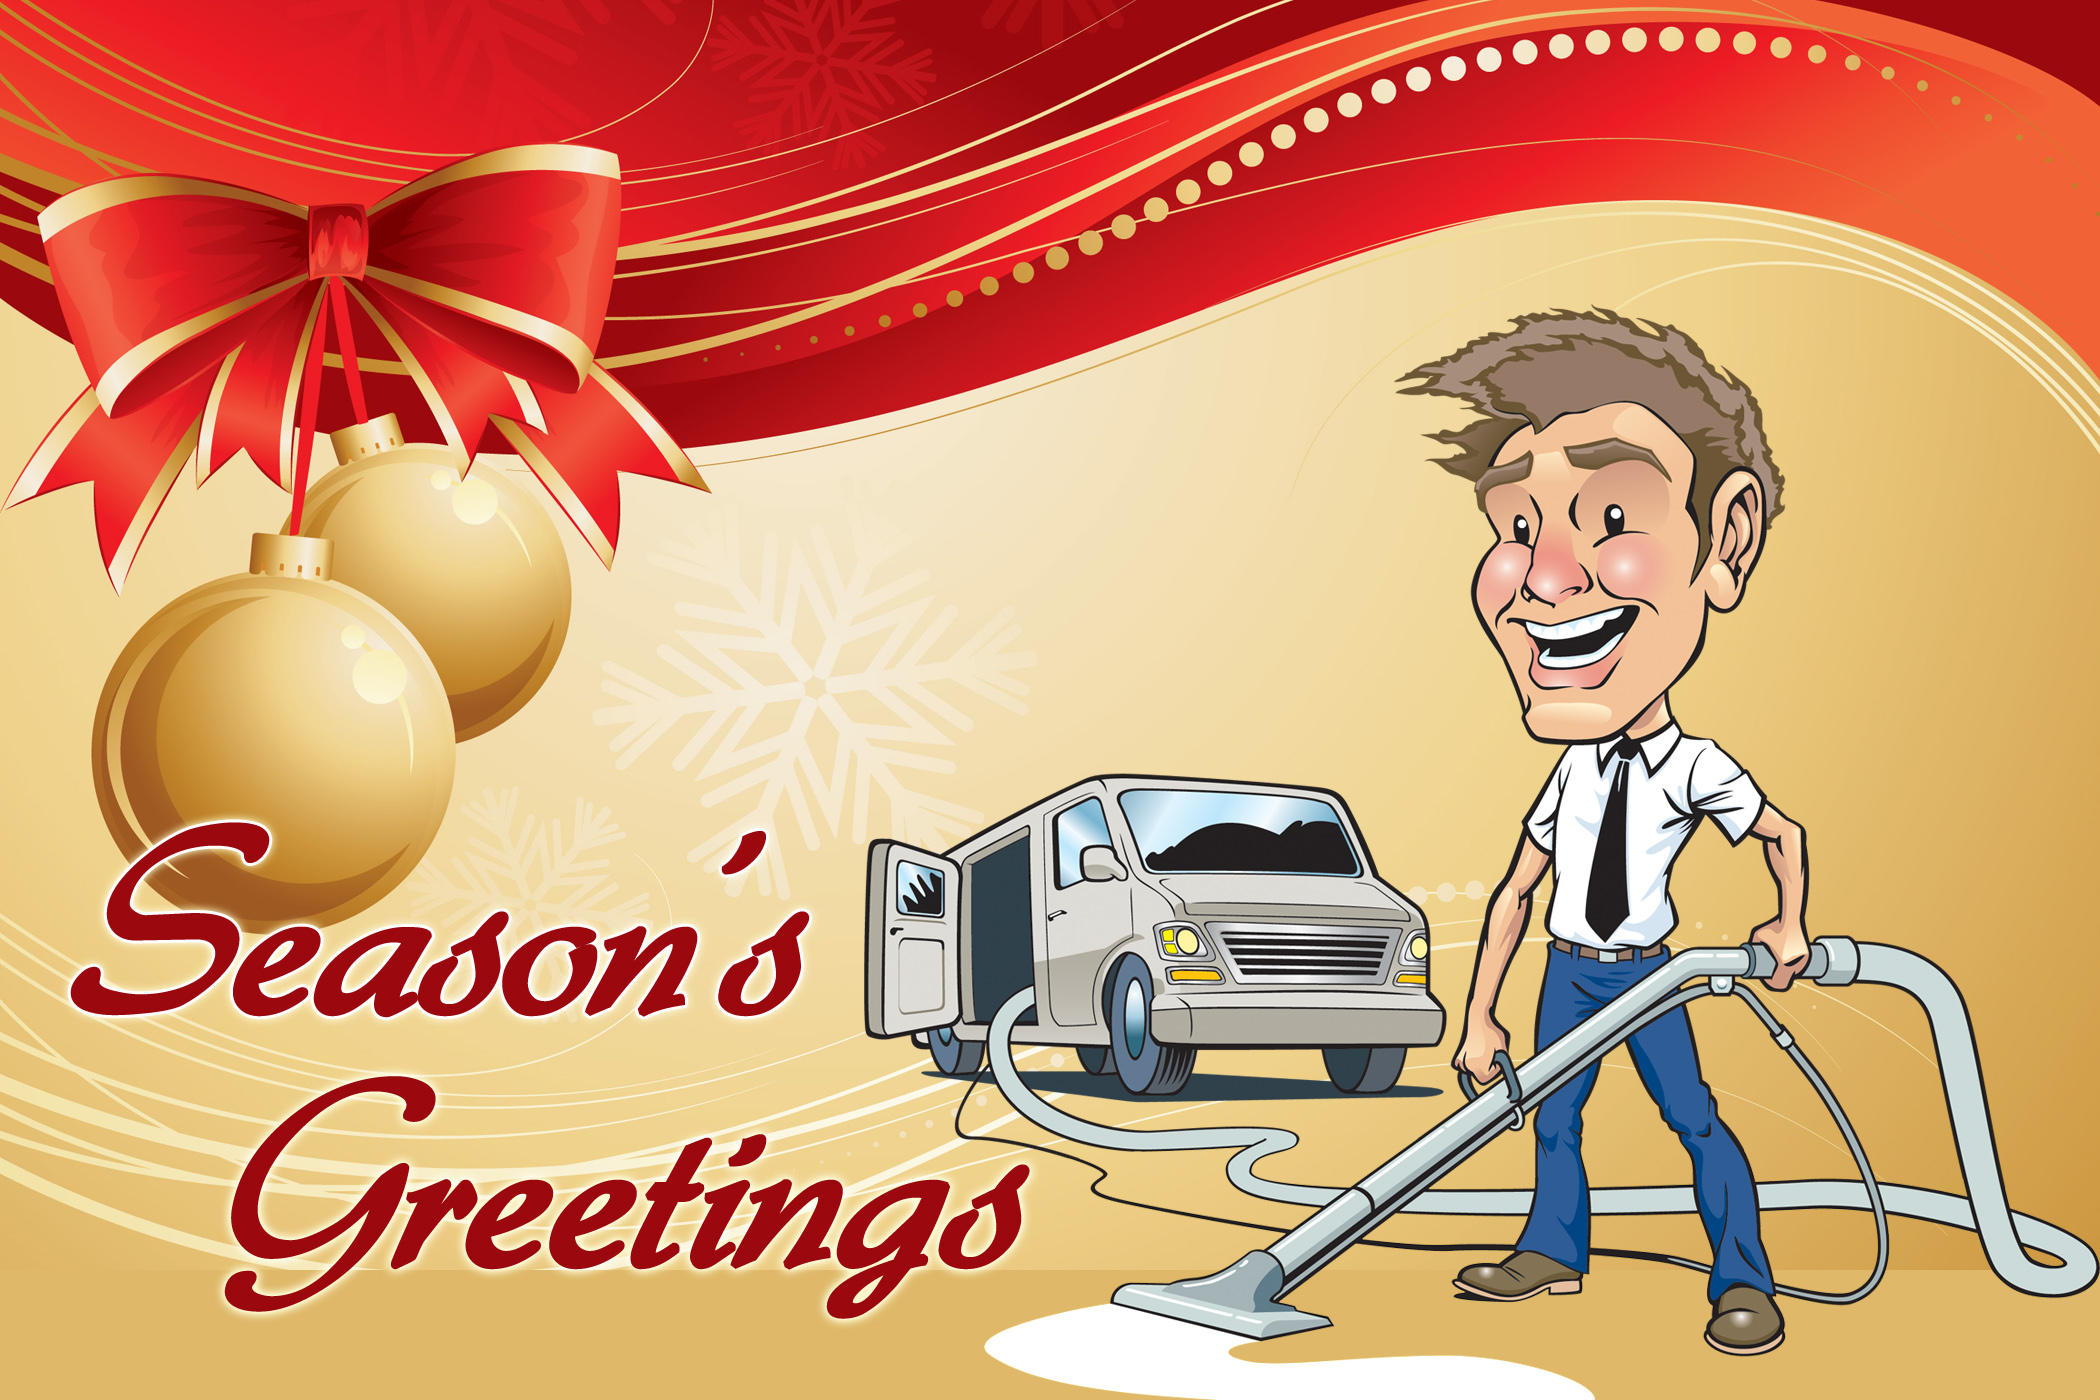 Christmas Carpet Cleaning.Servicemonster S 2011 Holiday Christmas Cards Carpet